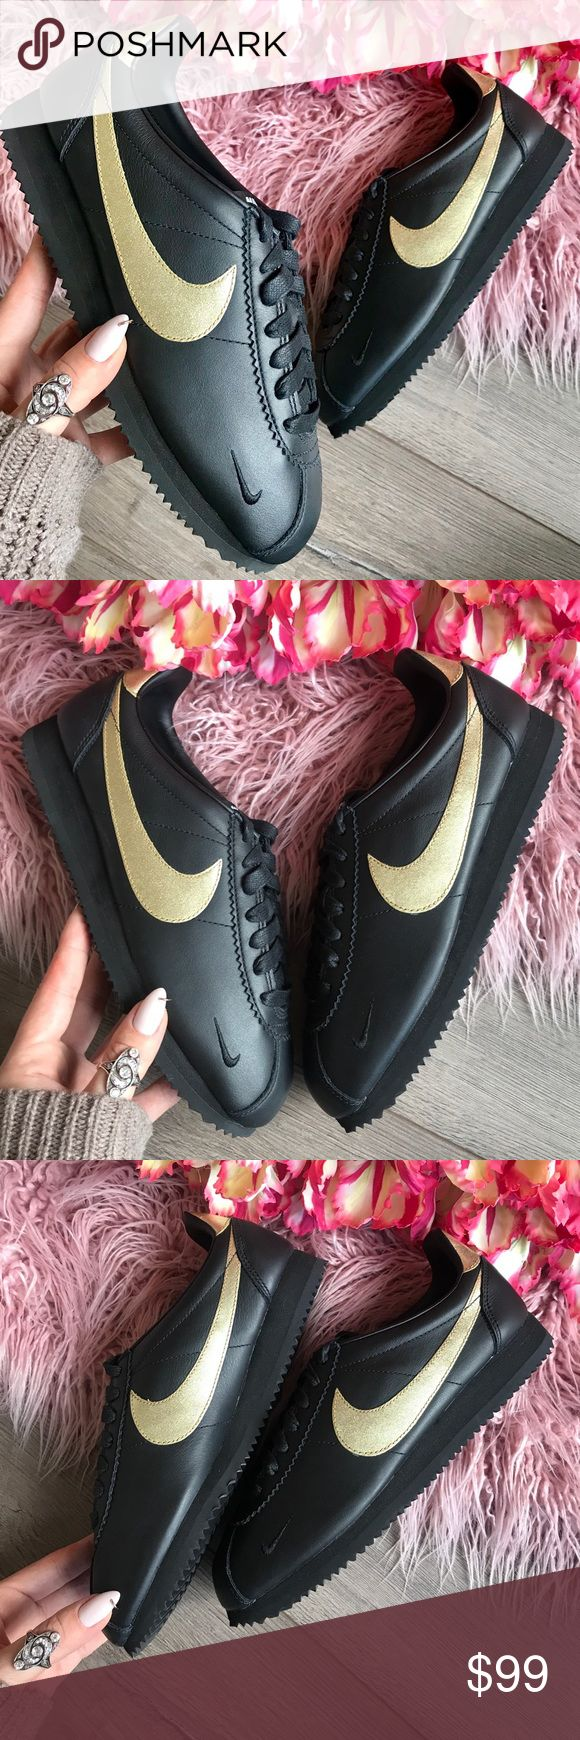 NWT Nike ID leather Cortez black on black gold Brand new no box. Custom made Nike ID. Price is firm!The Nike Classic Cortez Women's Shoe is Nike's original running shoe, designed by Bill Bowerman and released in 1972. This version features a leather and synthetic leather construction for added durability.  Benefits Leather and synthetic leather upper for durability Foam sole for lightweight cushioning Rubber outsole with herringbone pattern for traction Nike Shoes